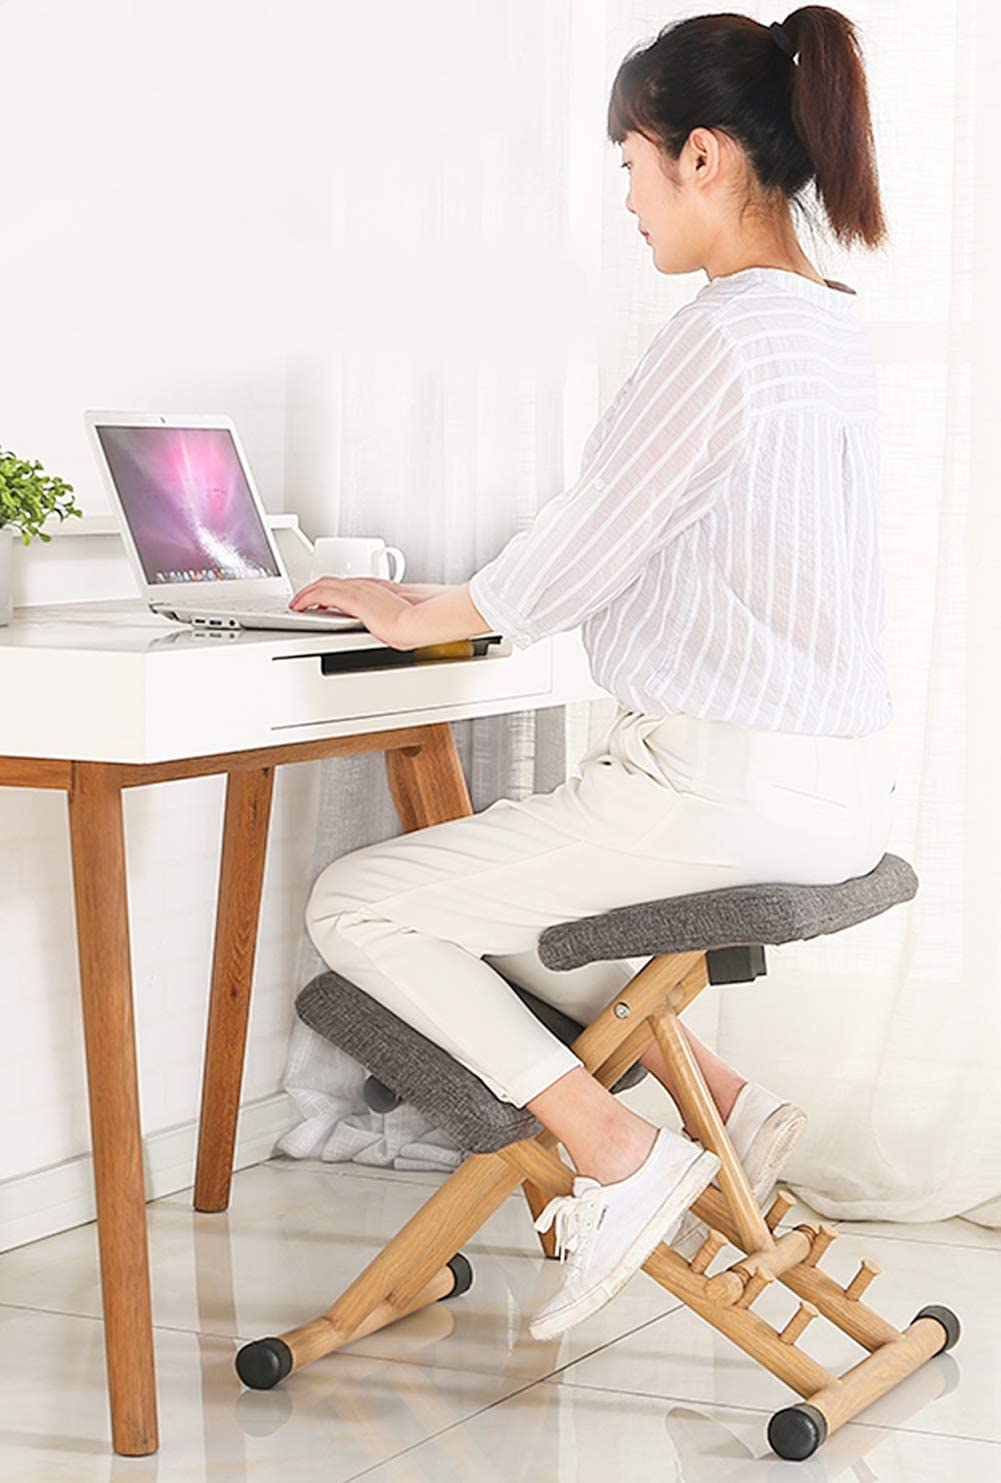 Meet World Chaise Ergonomique Assis Genoux, Chaises De Bureau Ergonomiques Chaise D'ordinateur Corrective Posture Posture Réglable Anti-Myopia Chair,3 2